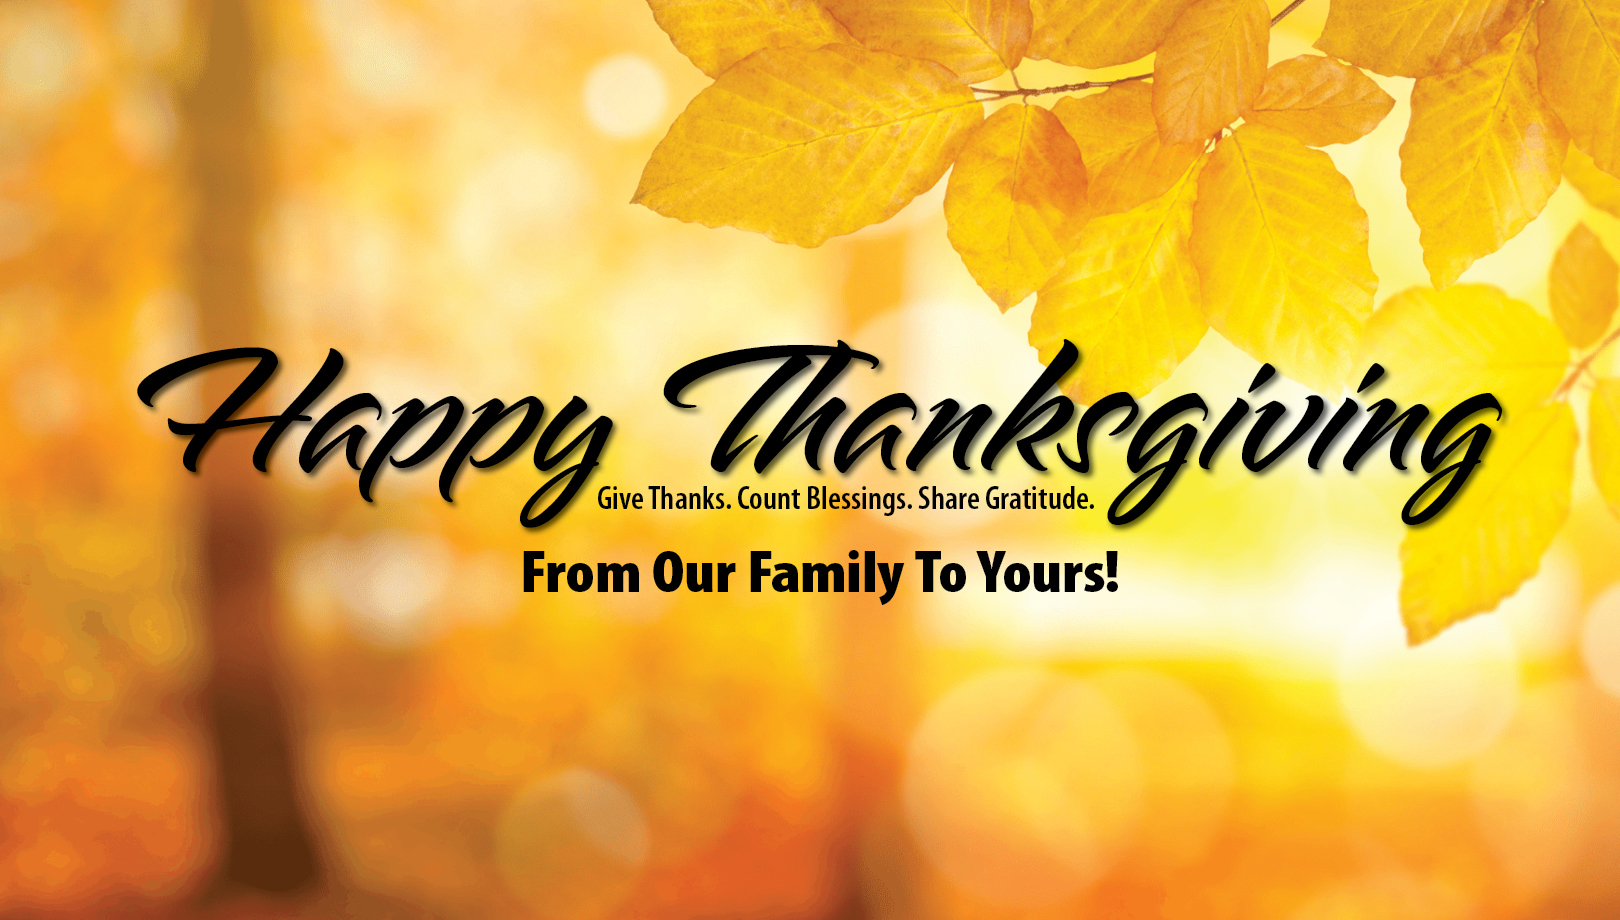 Happy Thanksgiving. Give Thanks. Count Blessings. Share Gratitude. From Our Family To Yours!